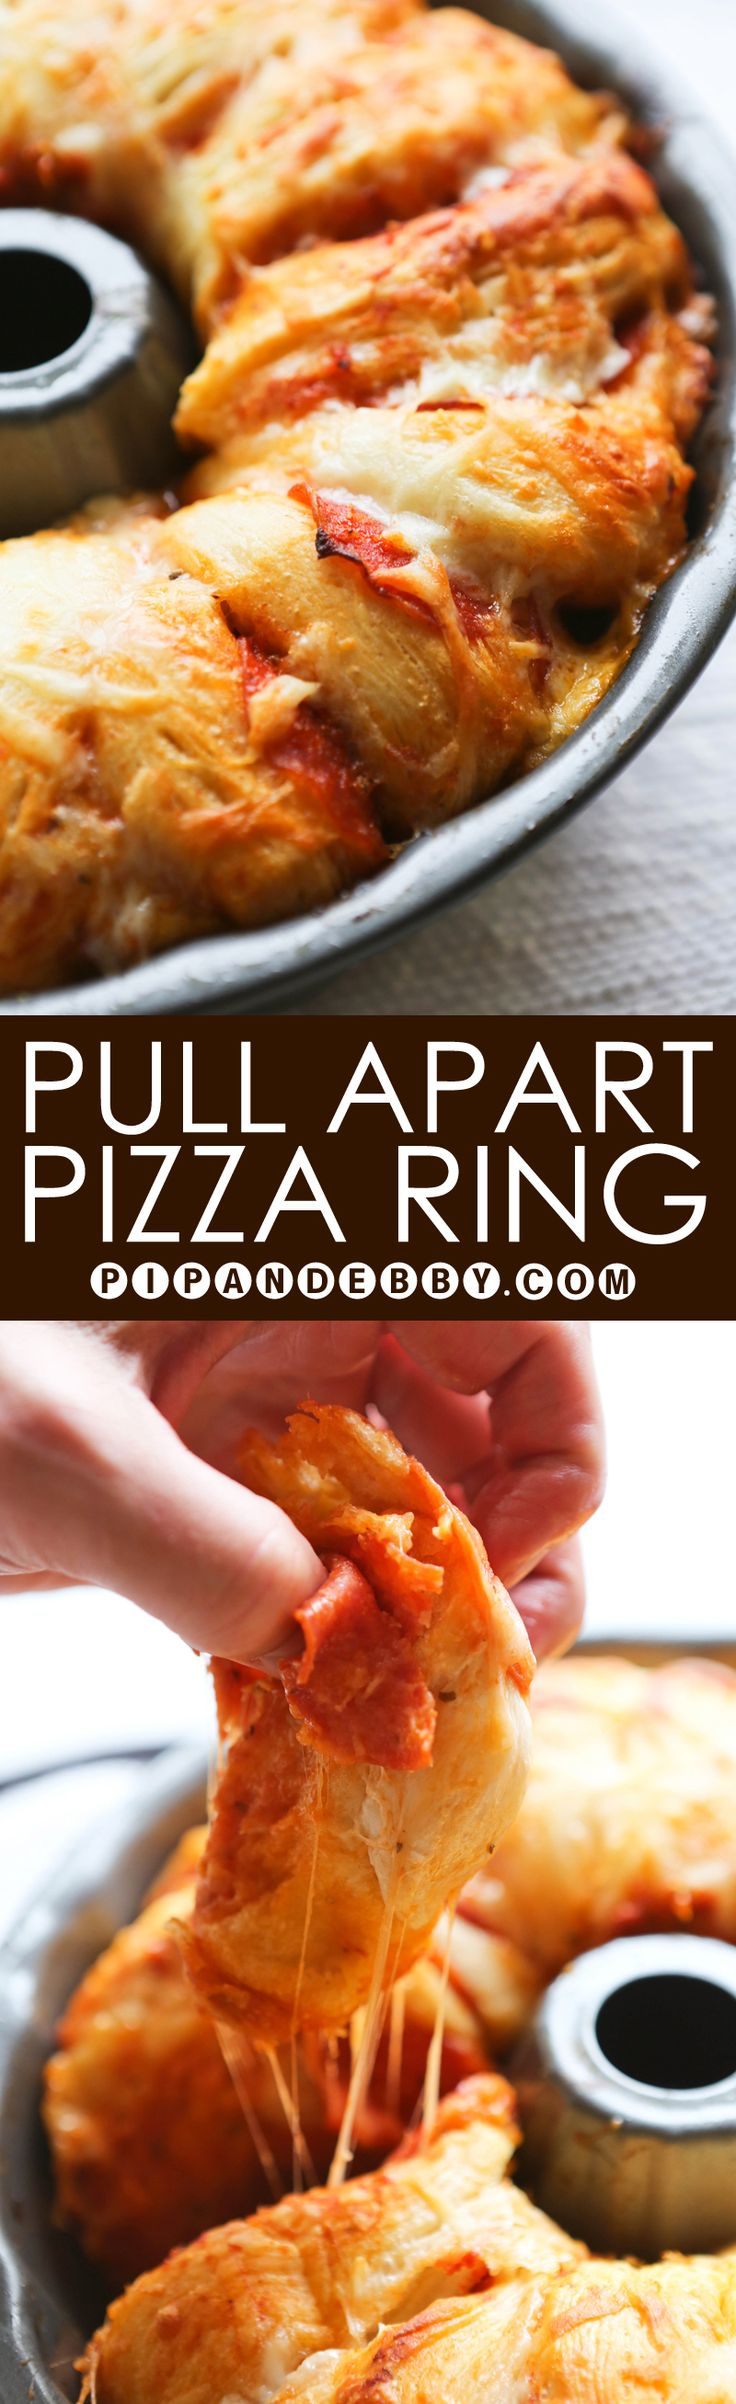 Pull Apart Pizza Ring | A fun twist on pizza! Kids love it and it couldn't be easier to prepare.